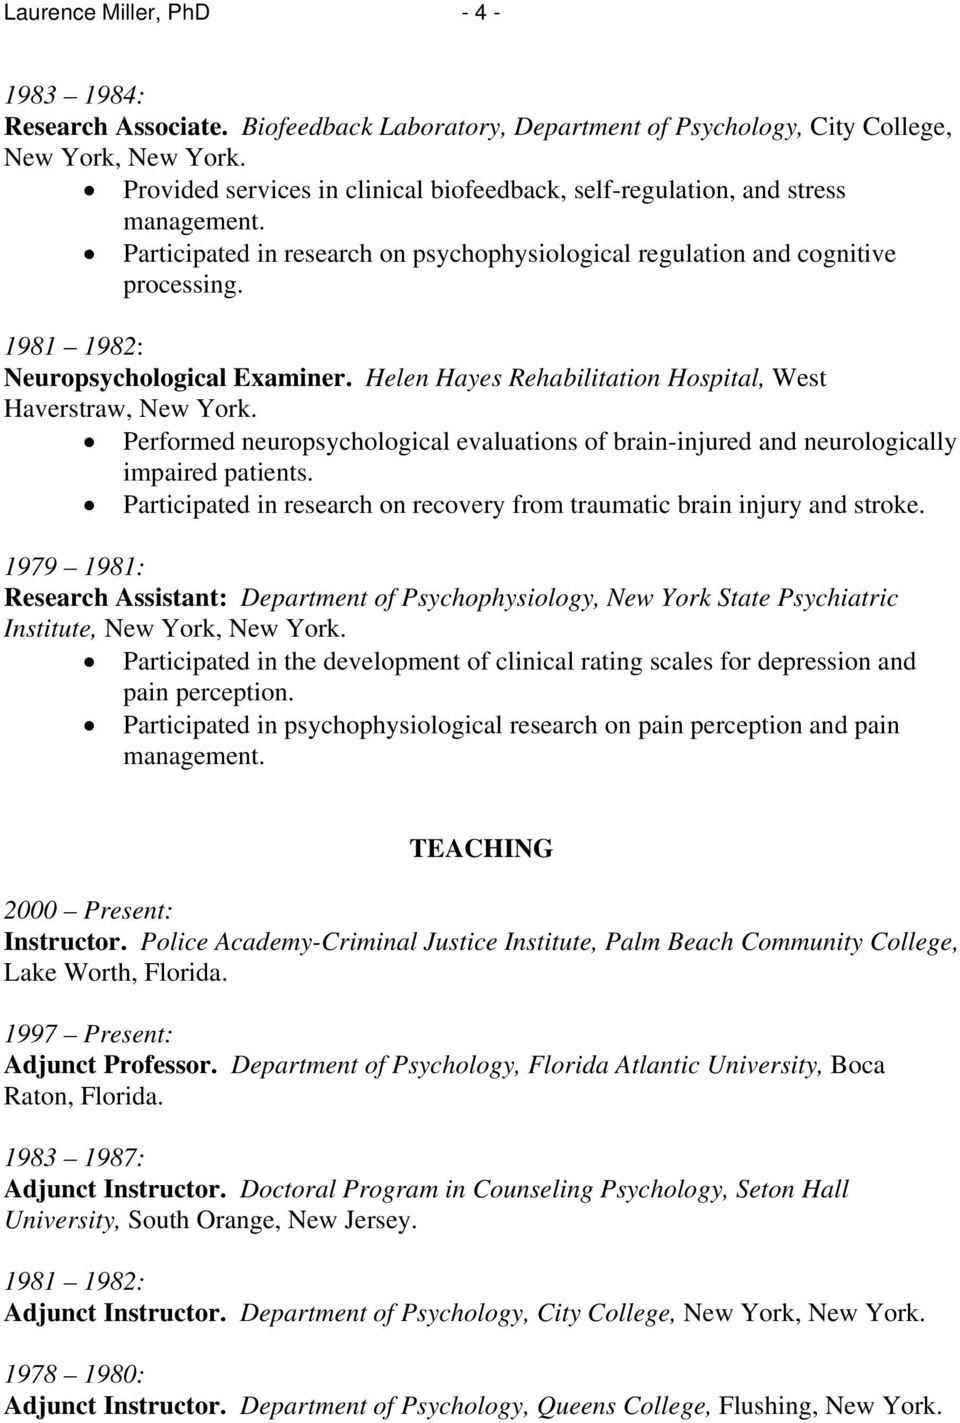 1981 1982: Neuropsychological Examiner. Helen Hayes Rehabilitation Hospital, West Haverstraw, New York. Performed neuropsychological evaluations of brain-injured and neurologically impaired patients.